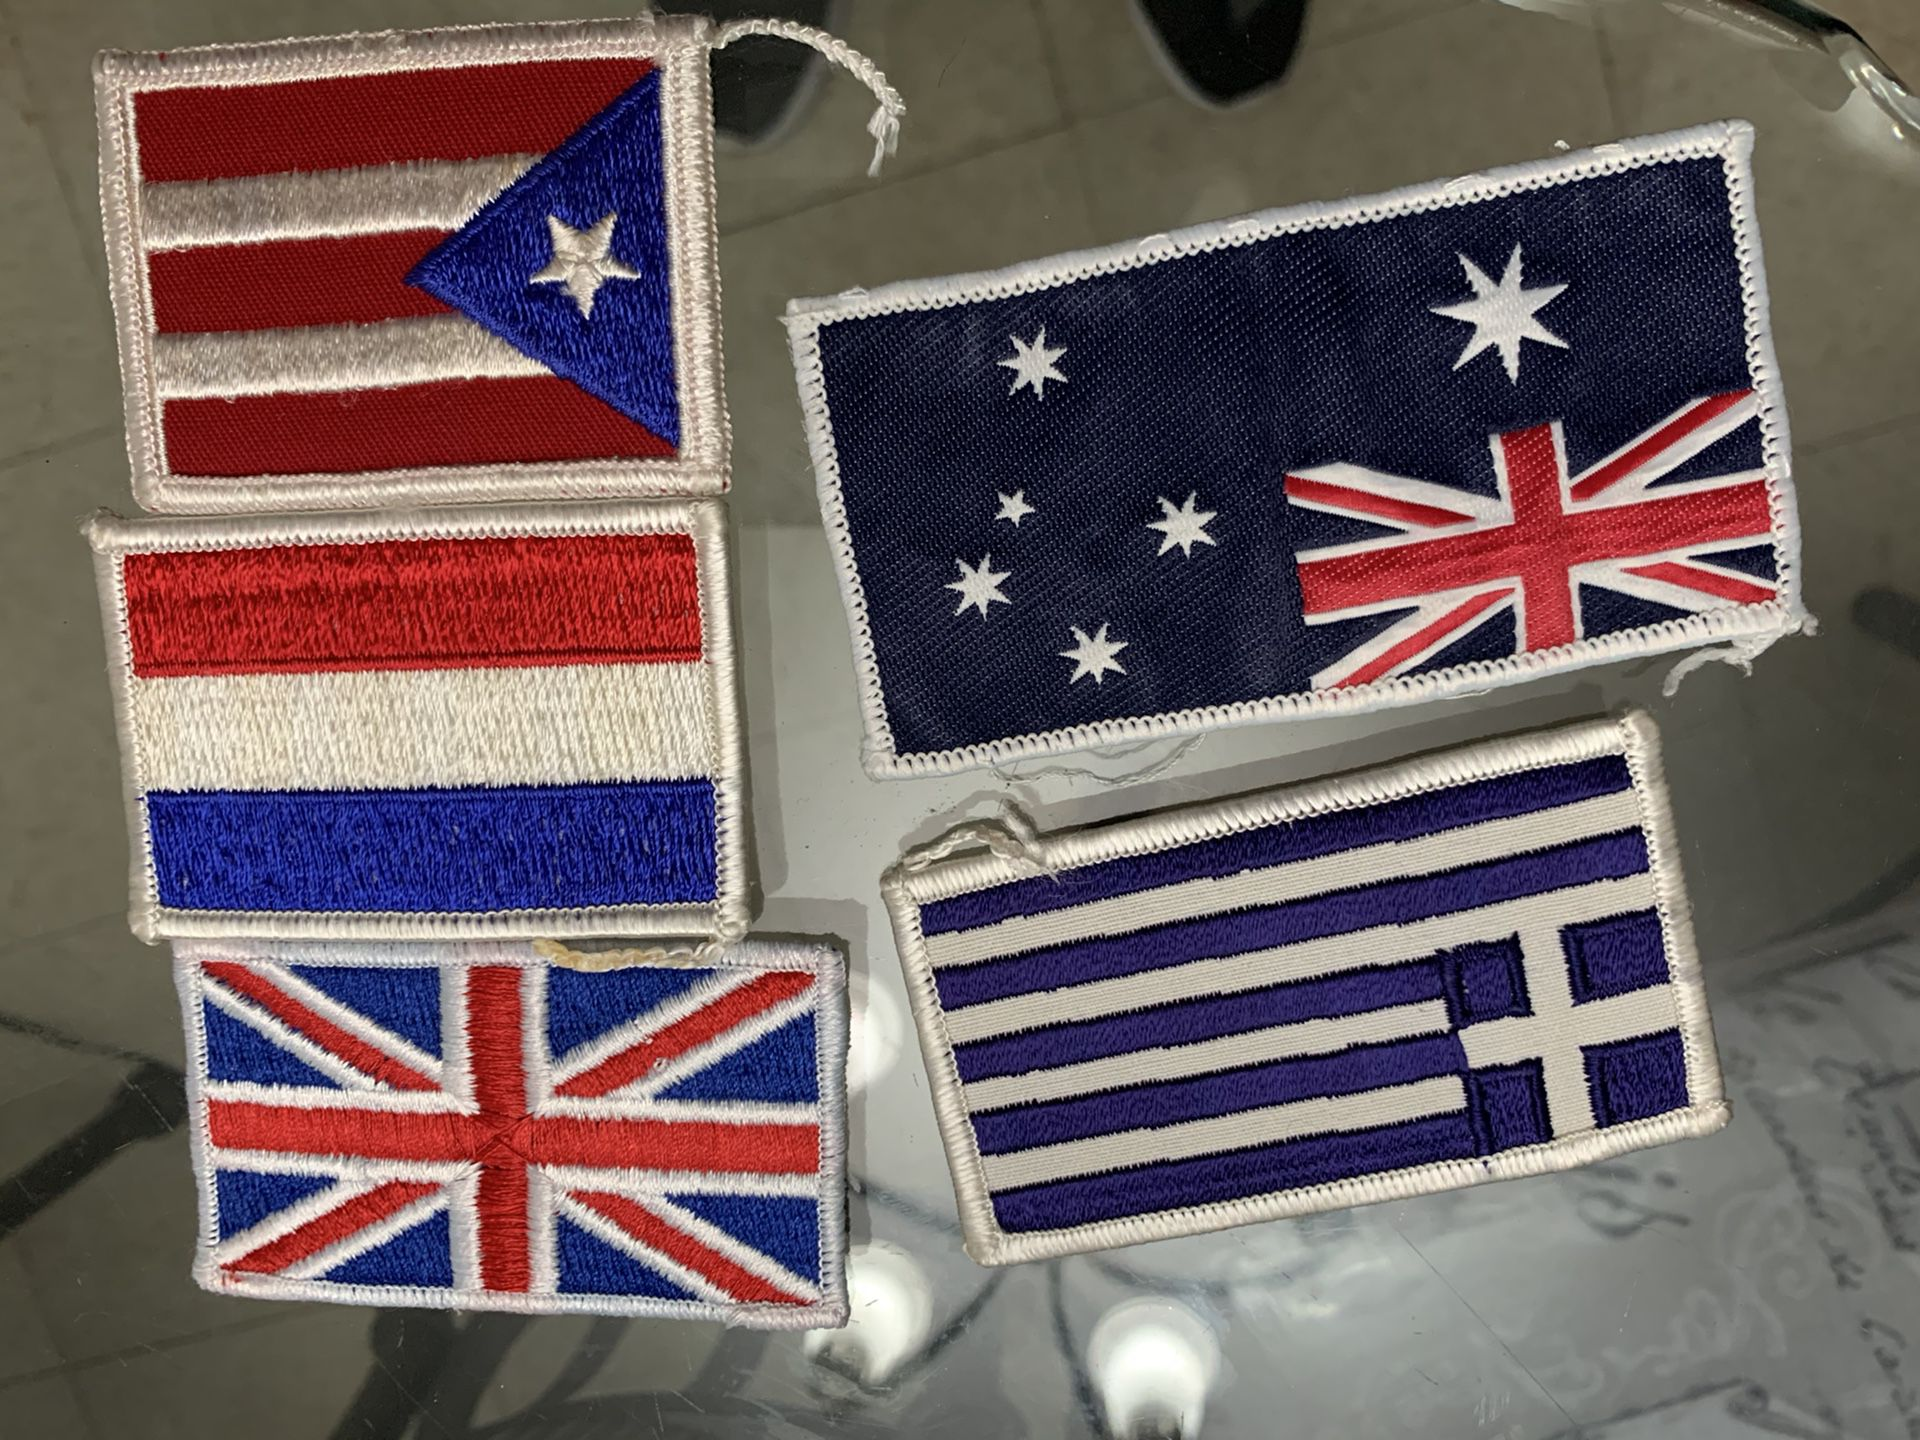 Flag patches